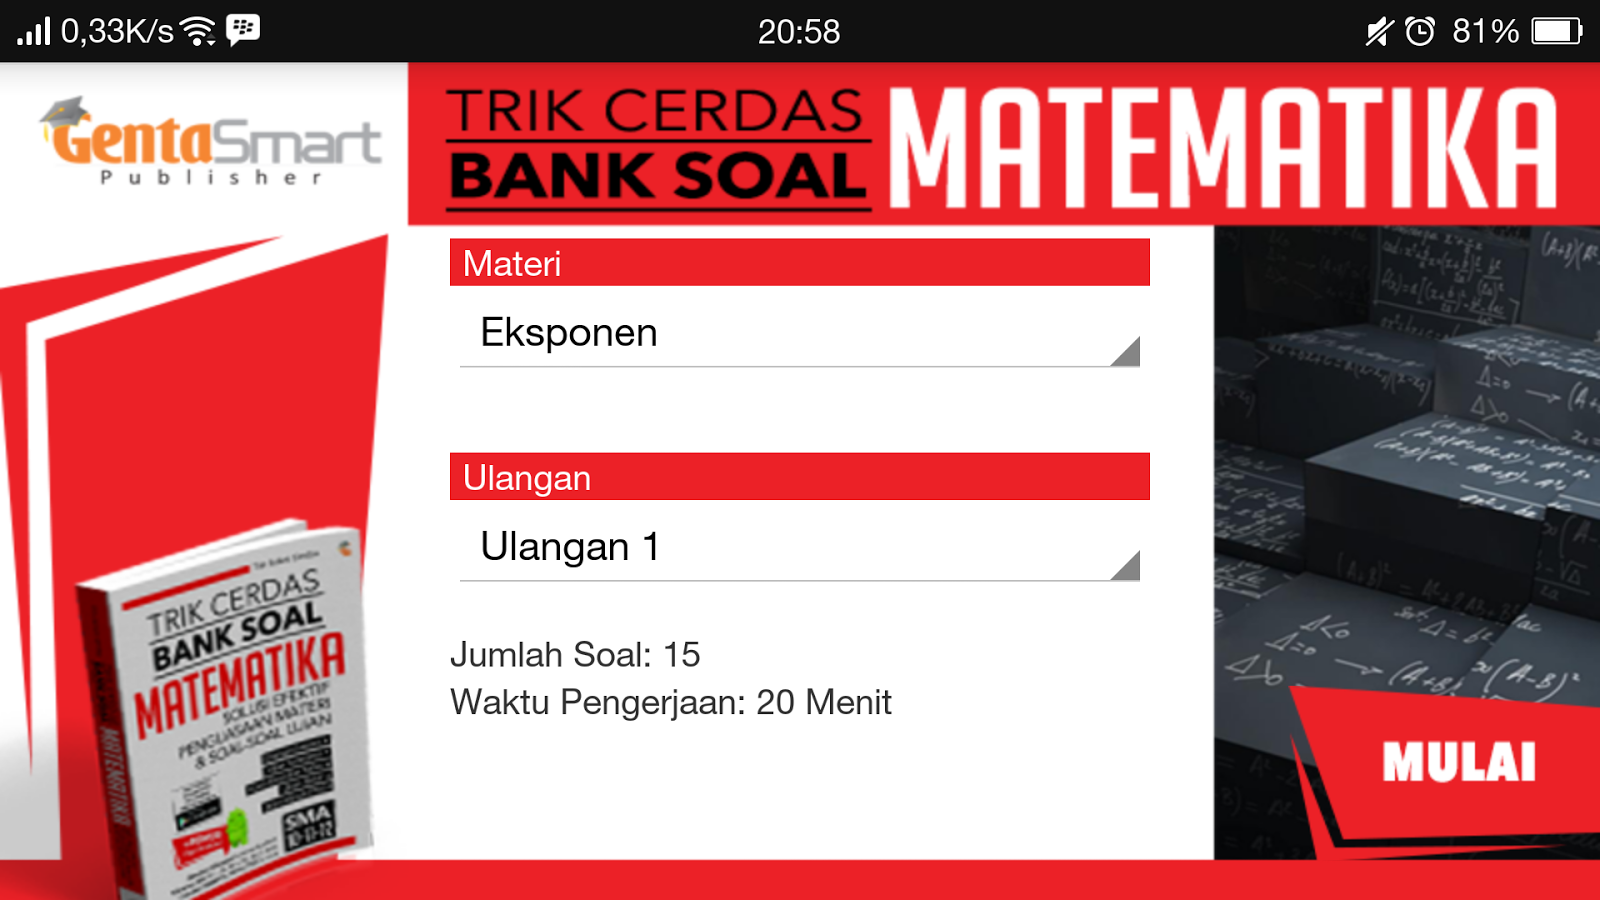 Trik Cerdas Matematika 2 0 Apk Download Android Education Apps